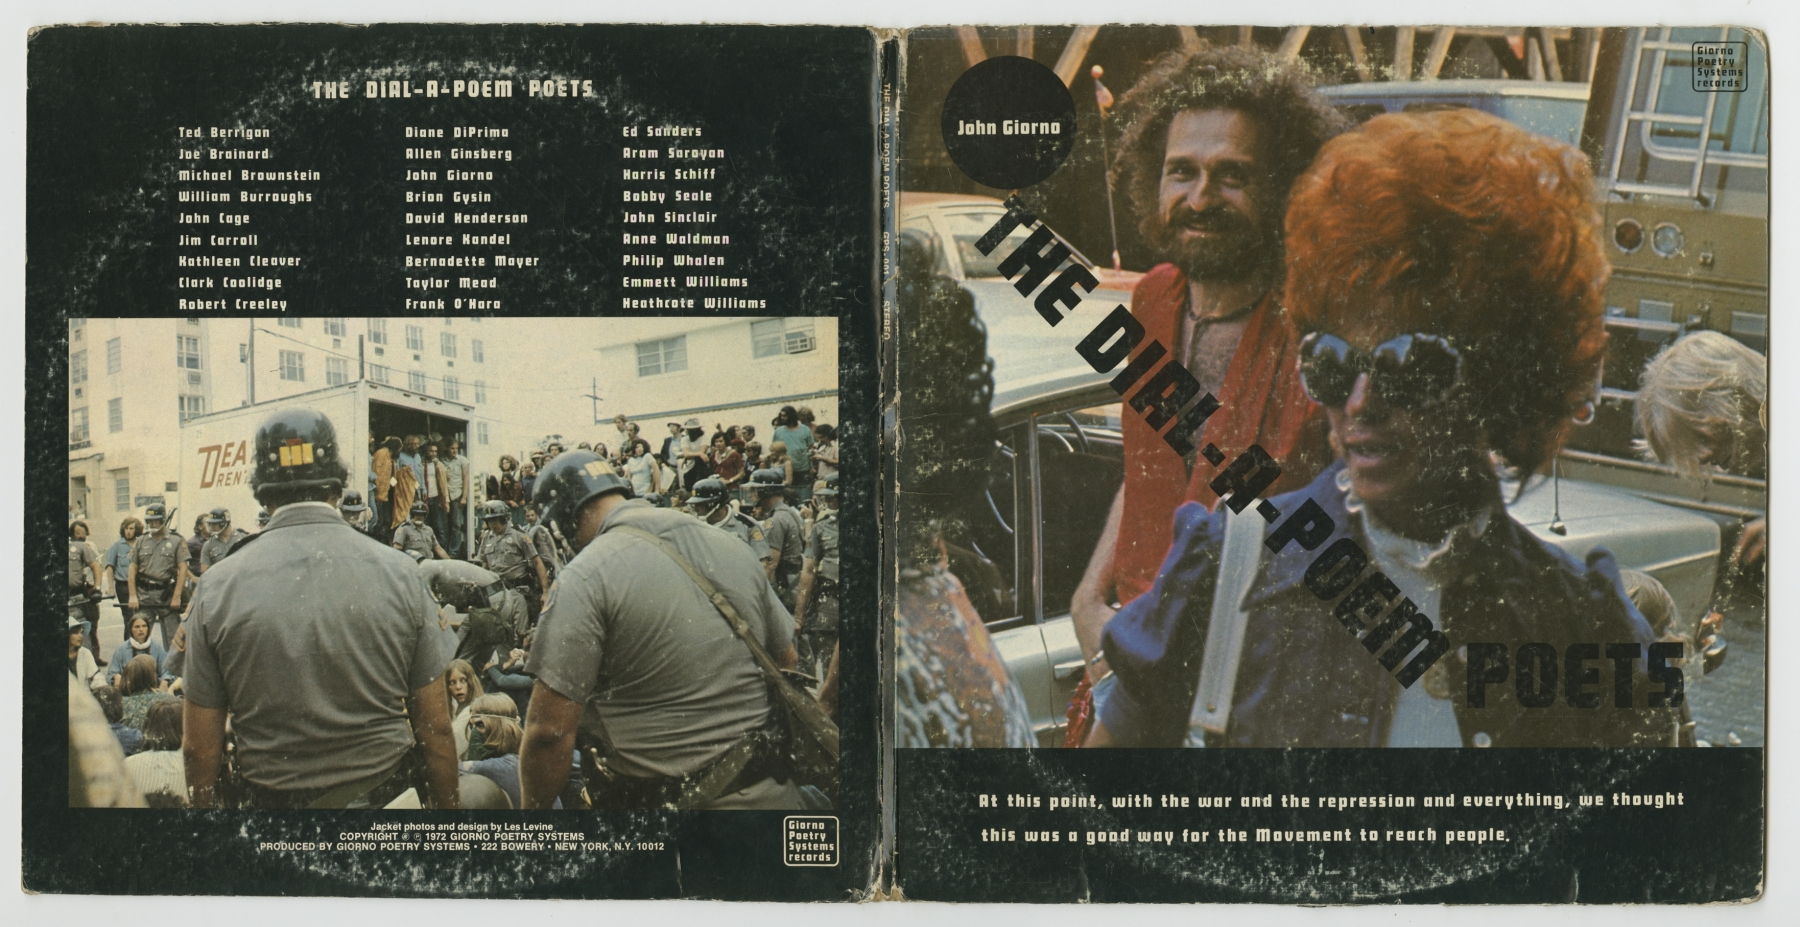 The Dial-A-Poem Poets LP, front and back covers